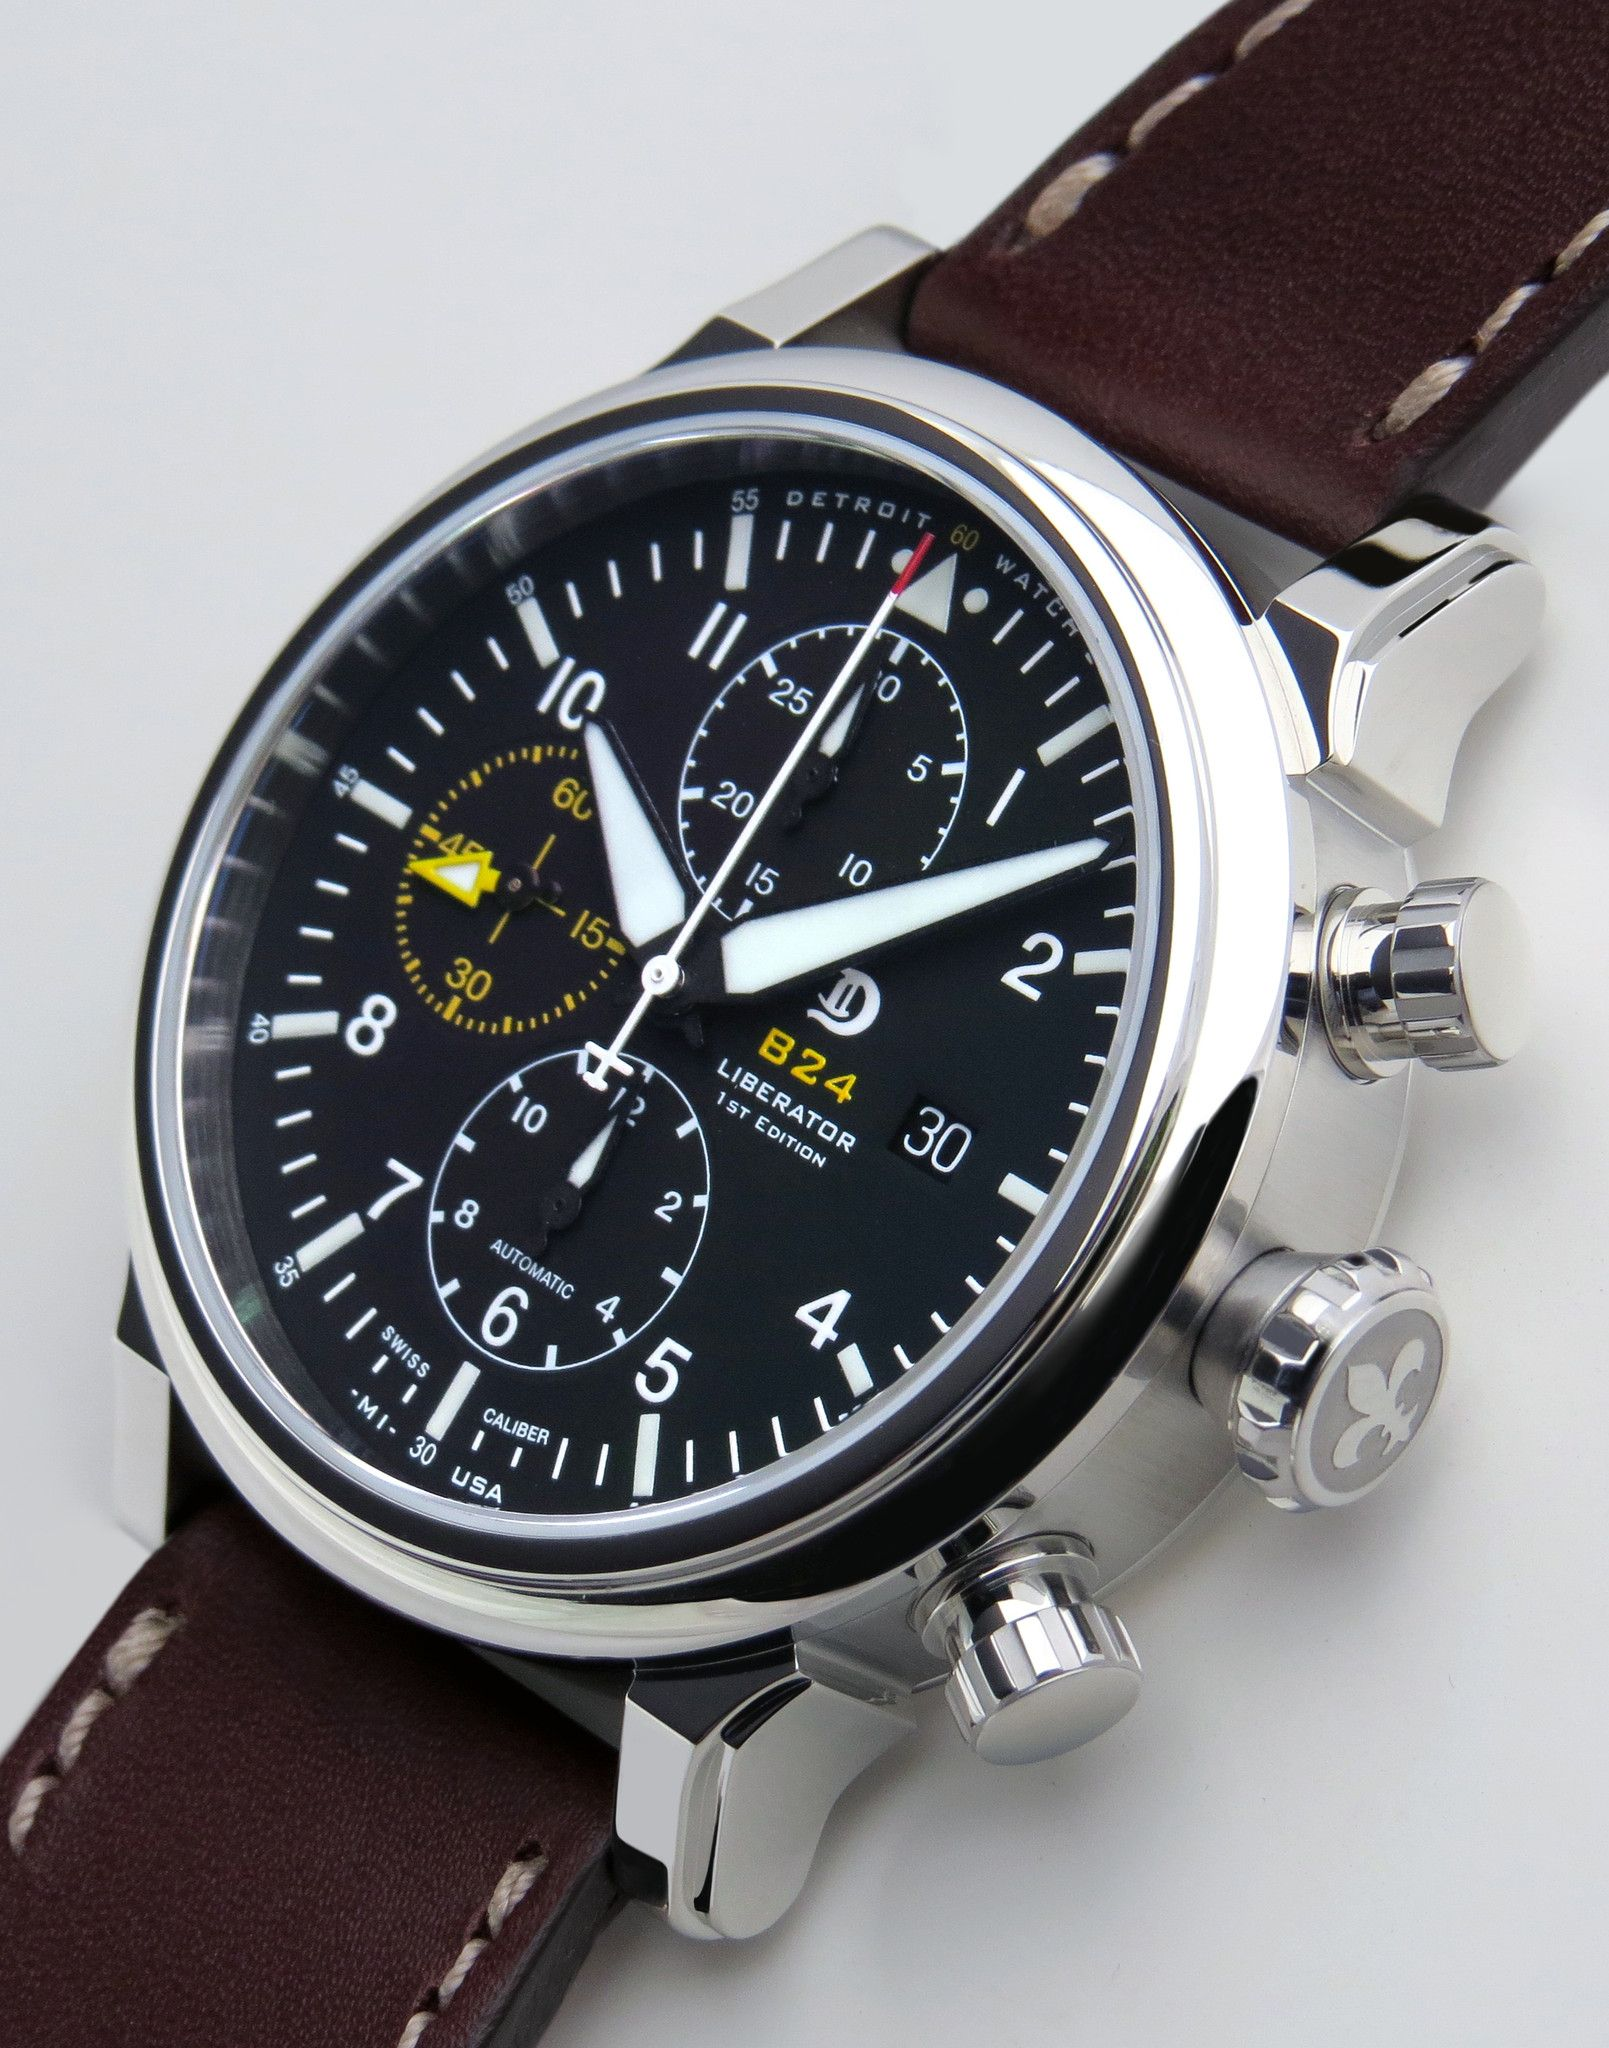 pilot automatik watches watch automatic russki fliegeruhren s russian poljot by description image e uhren aviator